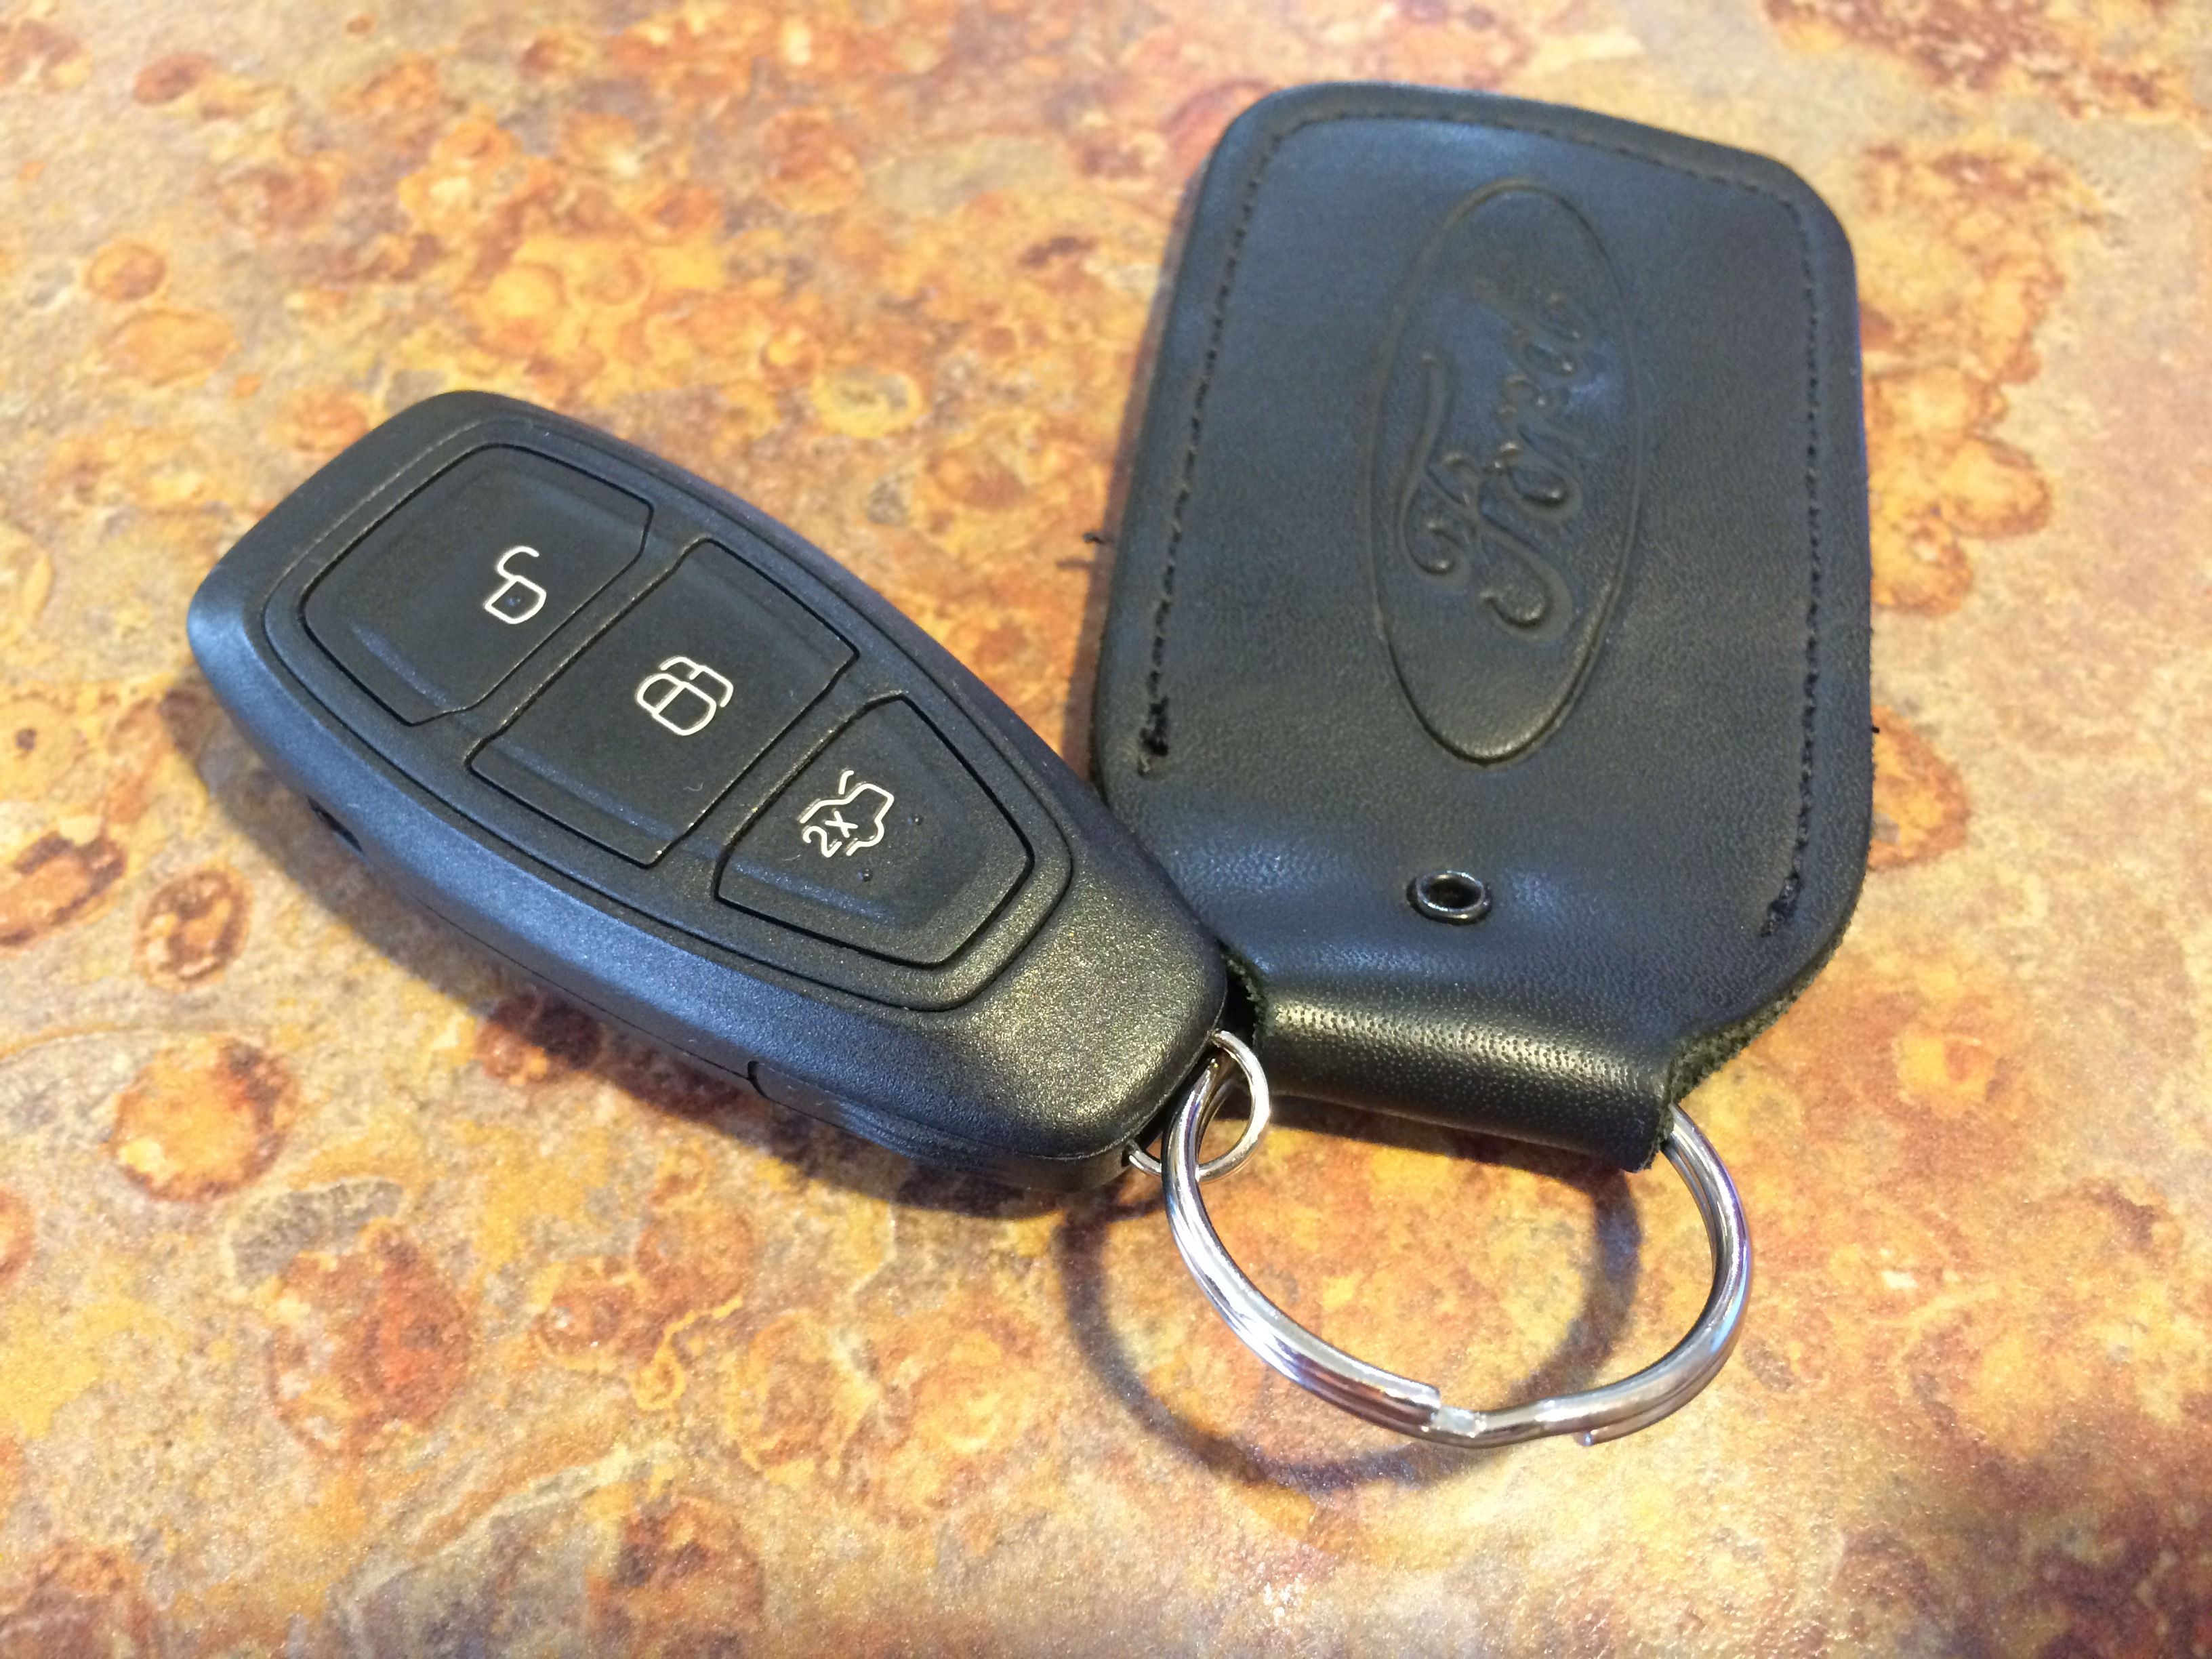 The ford focus st comes with a smart key to auto unlock doors and link up